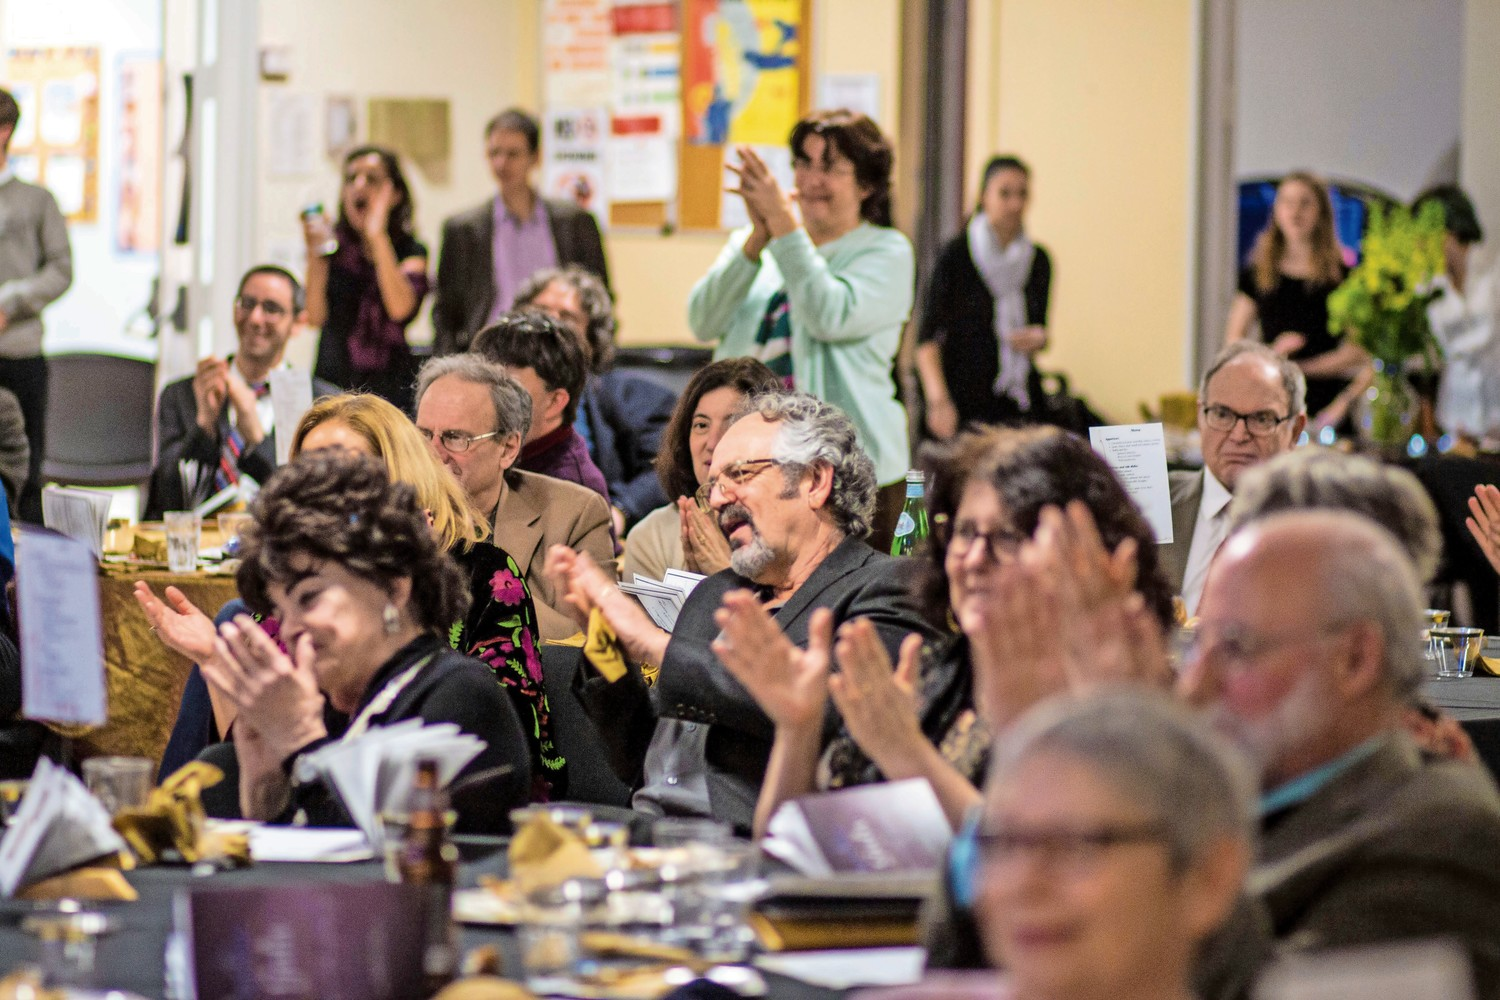 Rabbi Linda Shriner-Cahn receives an ovation from the assembled audience. Shriner-Cahn, who has served as the Congregation Tehillah's rabbi for nearly the past decade, was honored during the congregation's annual gala at The Riverdale Y.